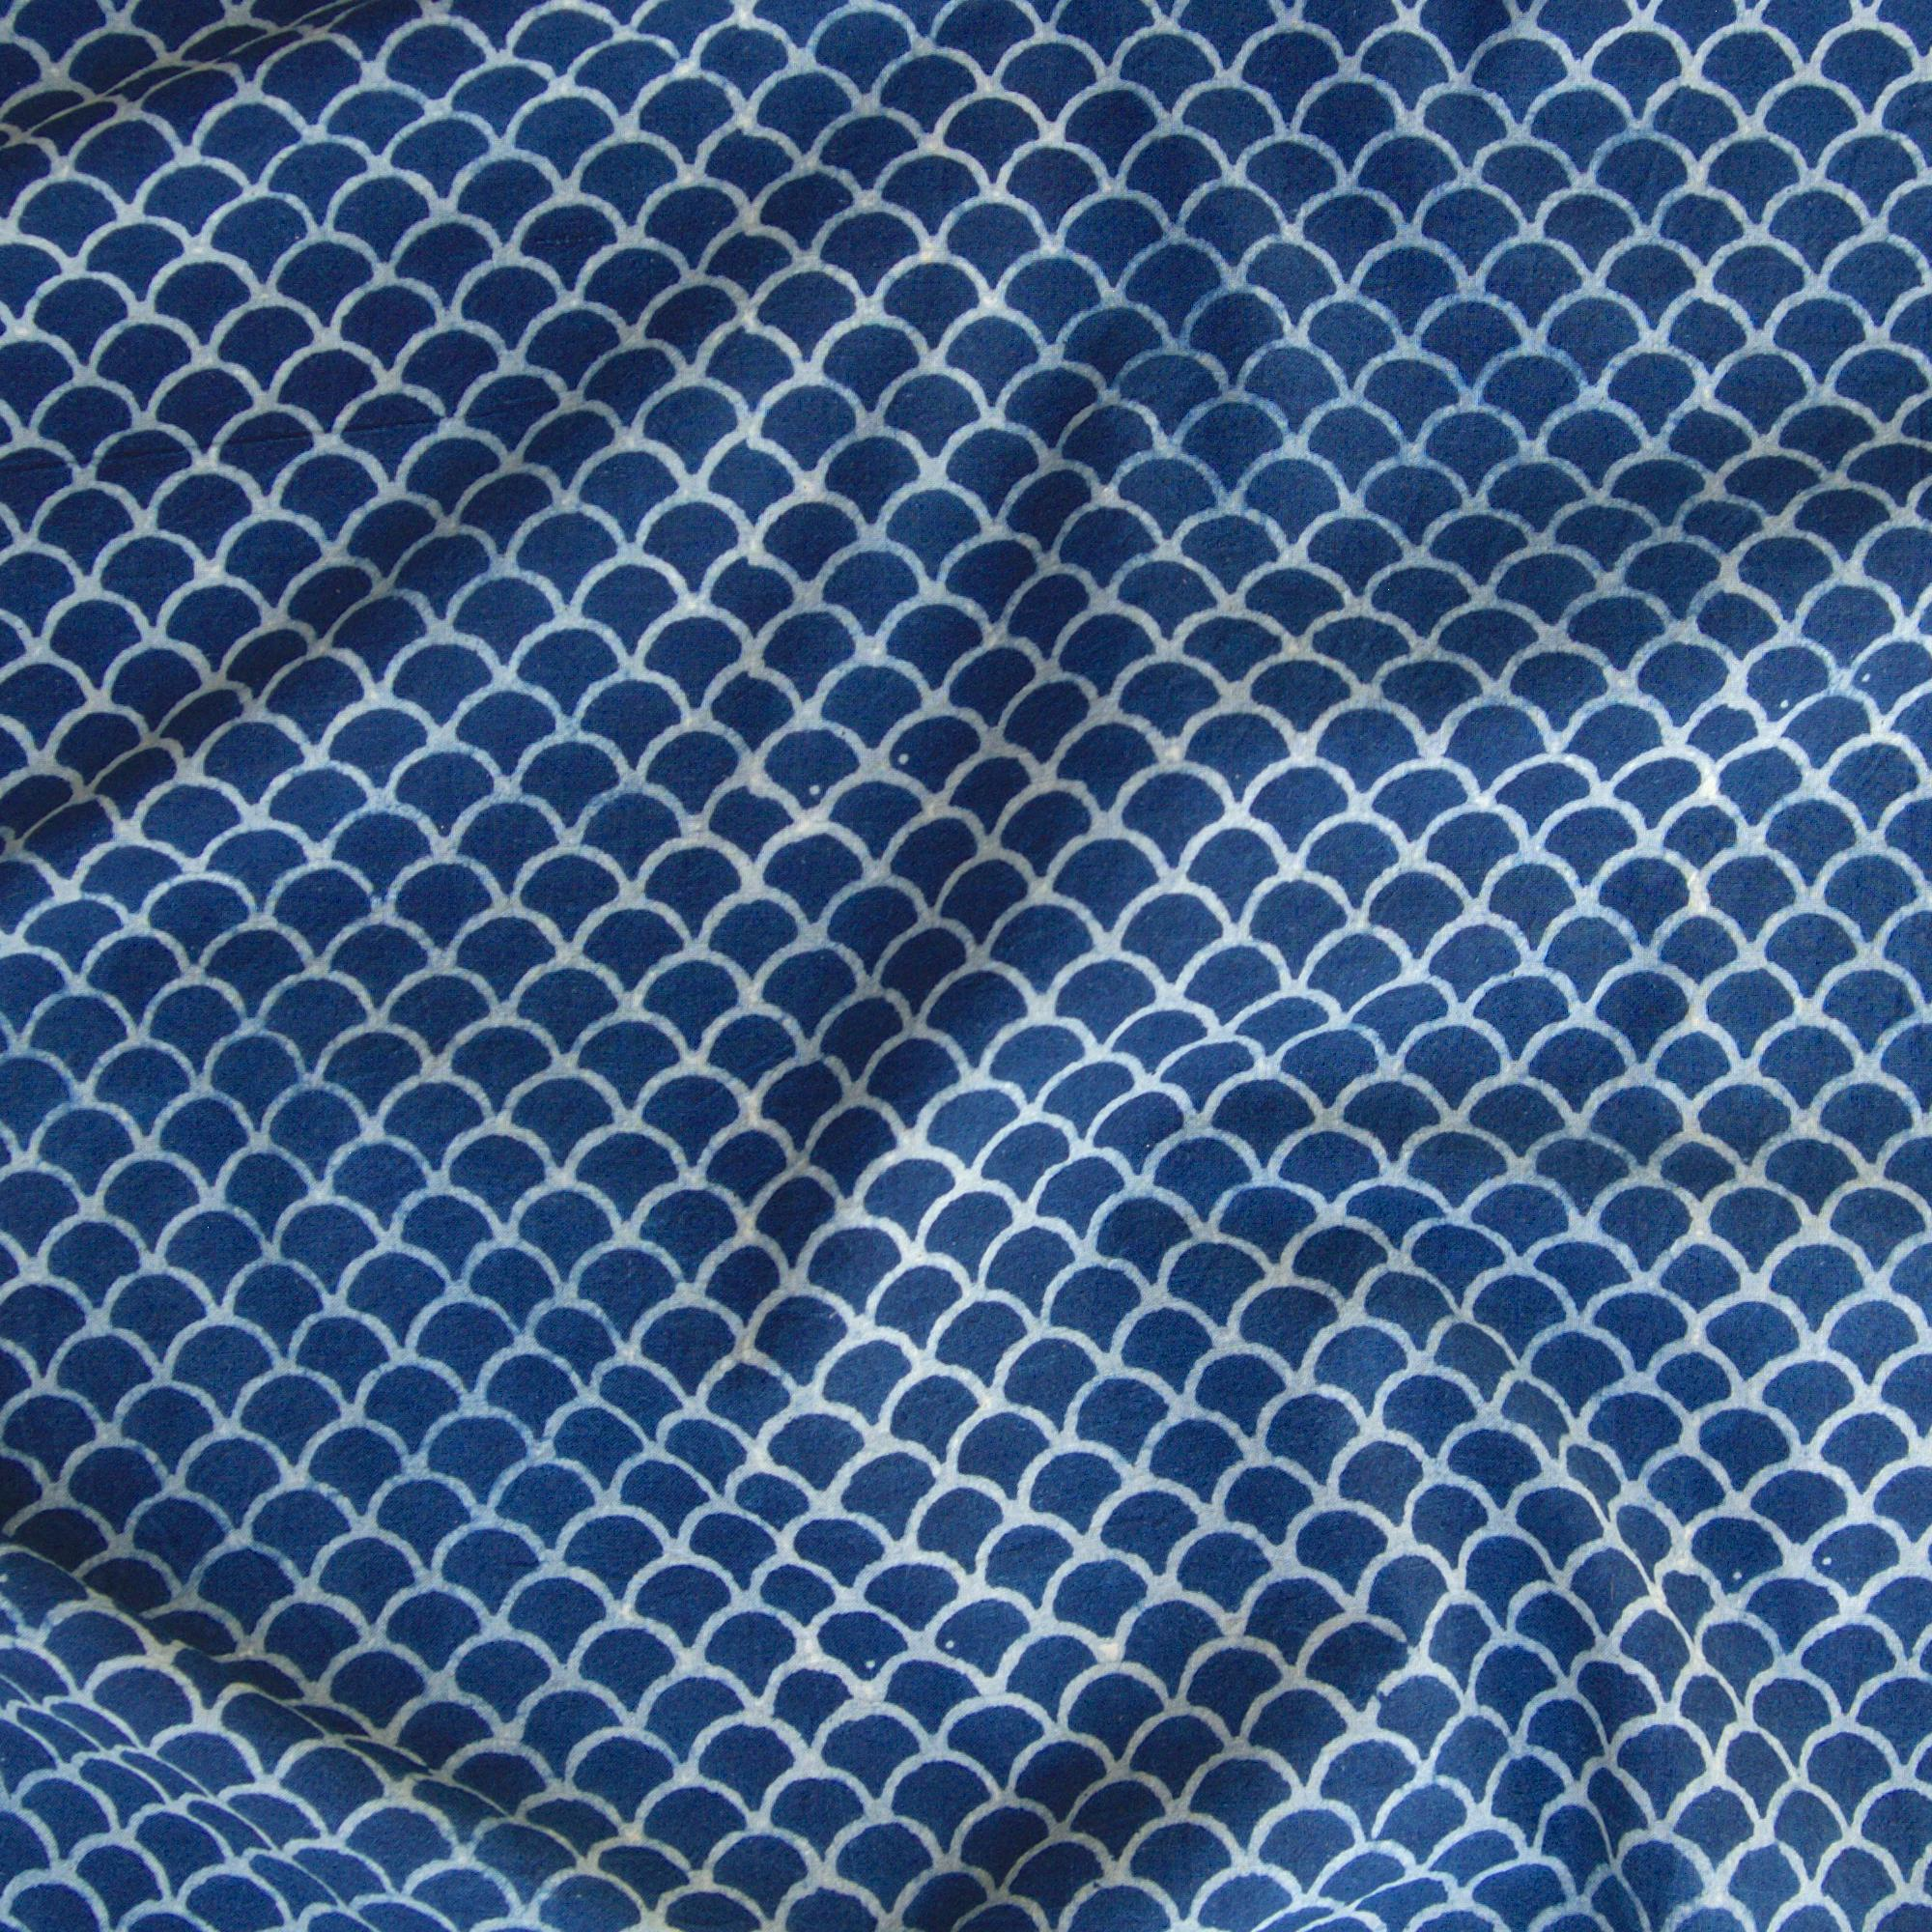 100% Block-Printed Cotton Fabric From India- Ajrak - Indigo White Resist Scales Print - Contrast